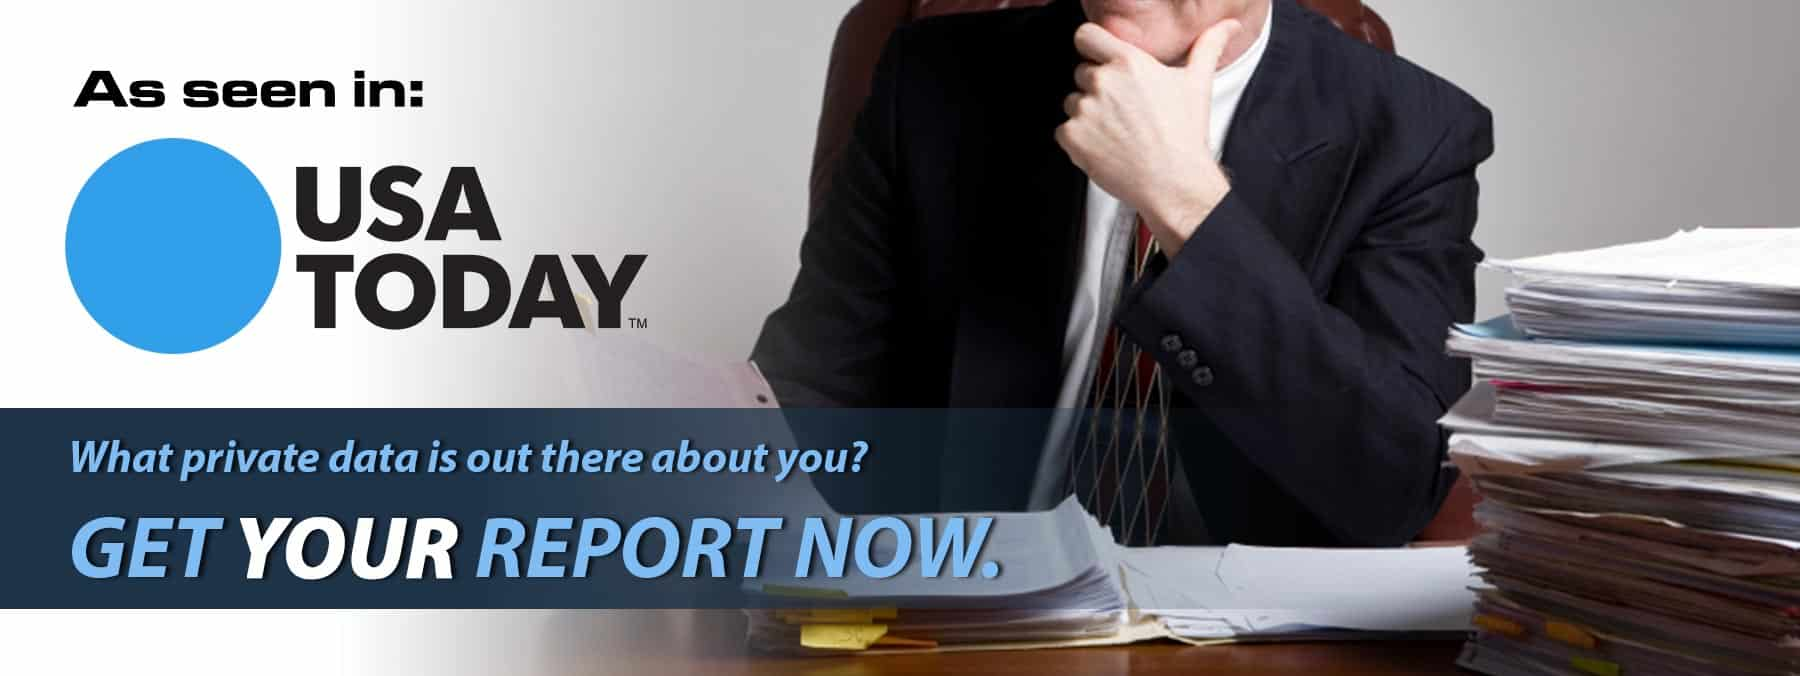 What private data is out there about you? Get your report now.